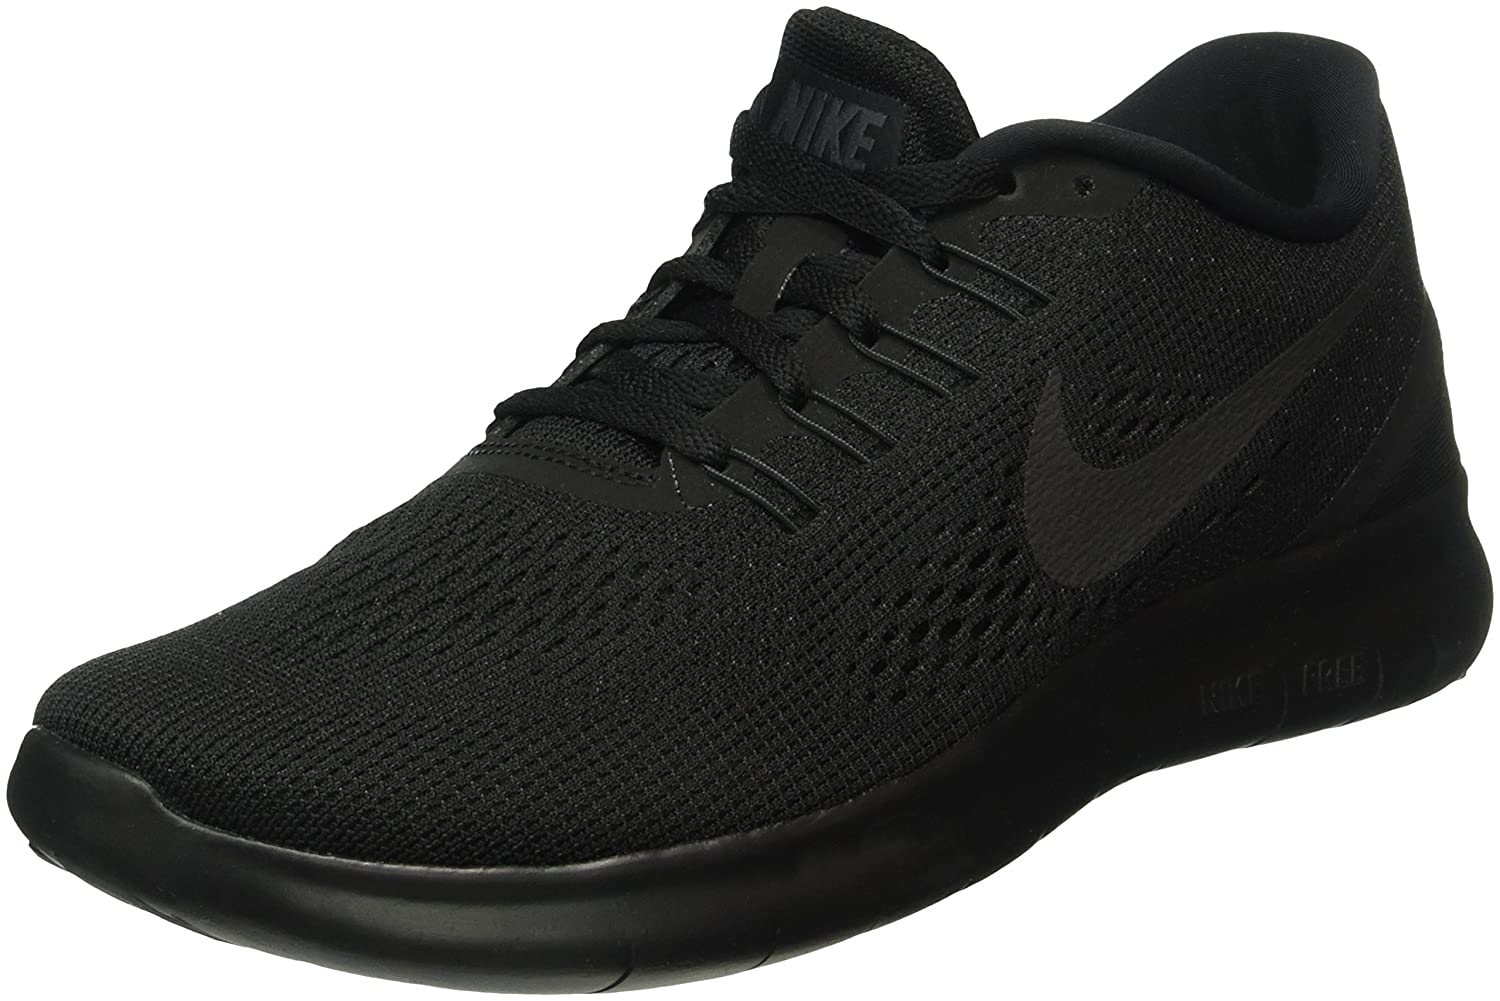 Nike Free Flyknit 5. 0 Green Strike Black 831069 300 Men's Athletic Sport Running Shoes Sneakers